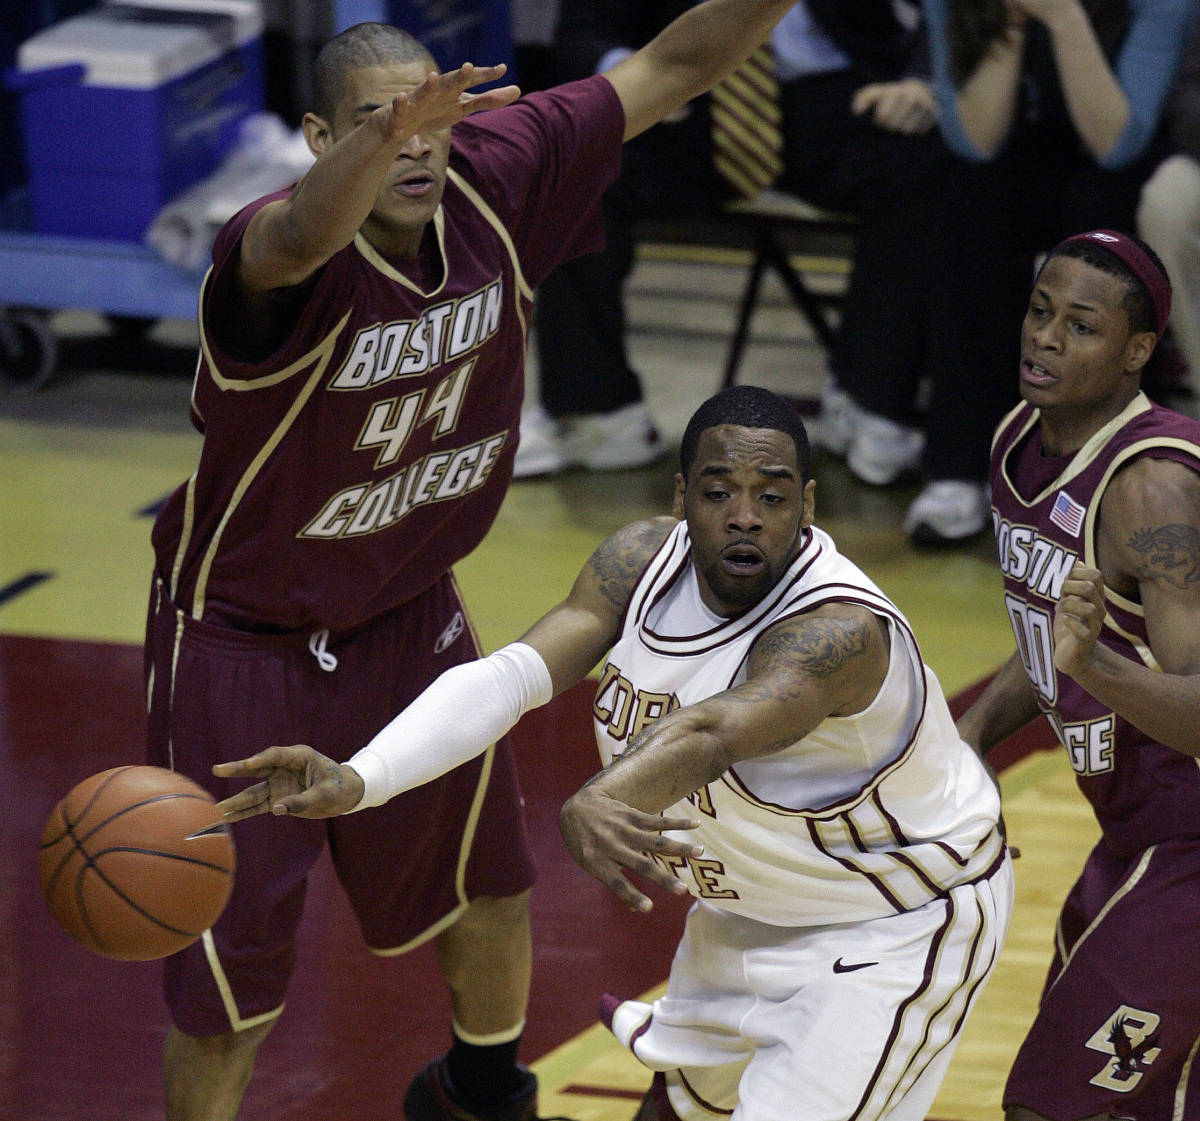 Florida State's Isaiah Swann, center, passes to a teammate during the first half of a college basketball game as Boston College's Tyrelle Blair, left, and Marquez Haynes, right, attempt to defend, Sunday, Feb. 11, 2007, in Tallahassee, Fla.(AP Photo/Phil Coale)